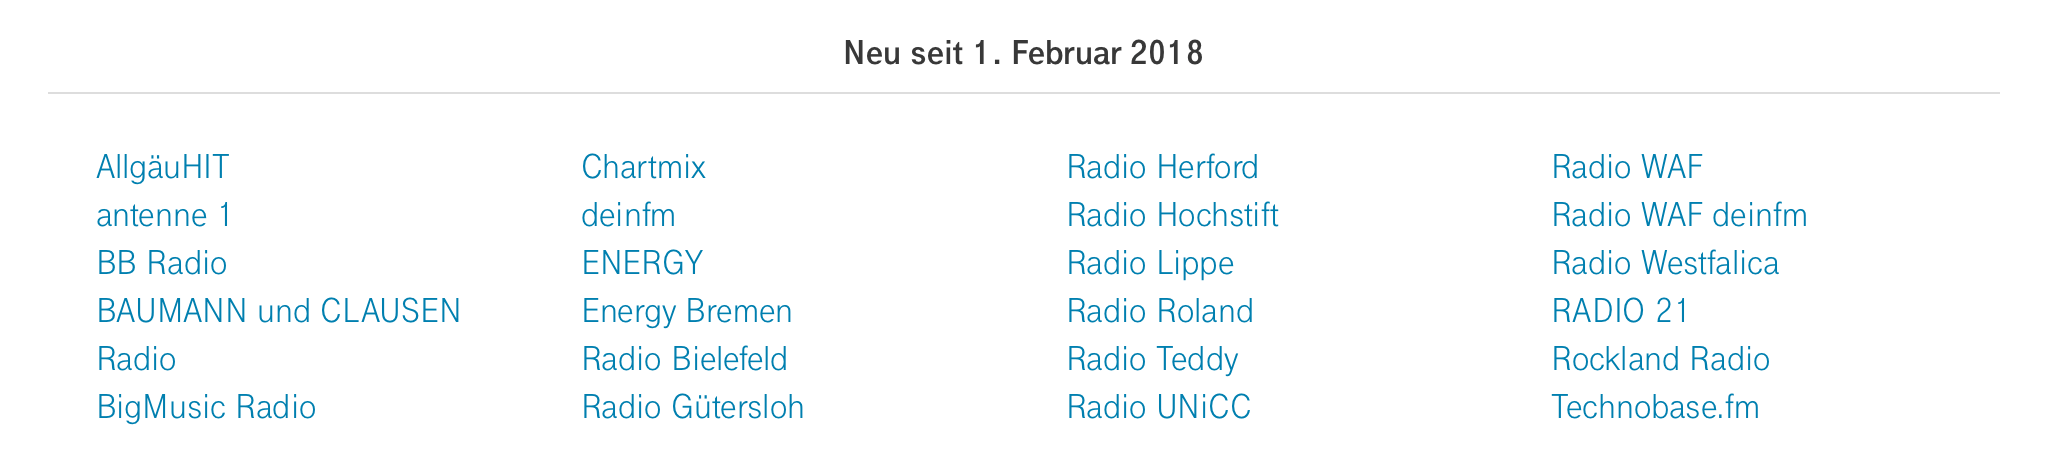 StreamOn Audio neu im Februar 2018 - Deutsche Telekom - Screenshot